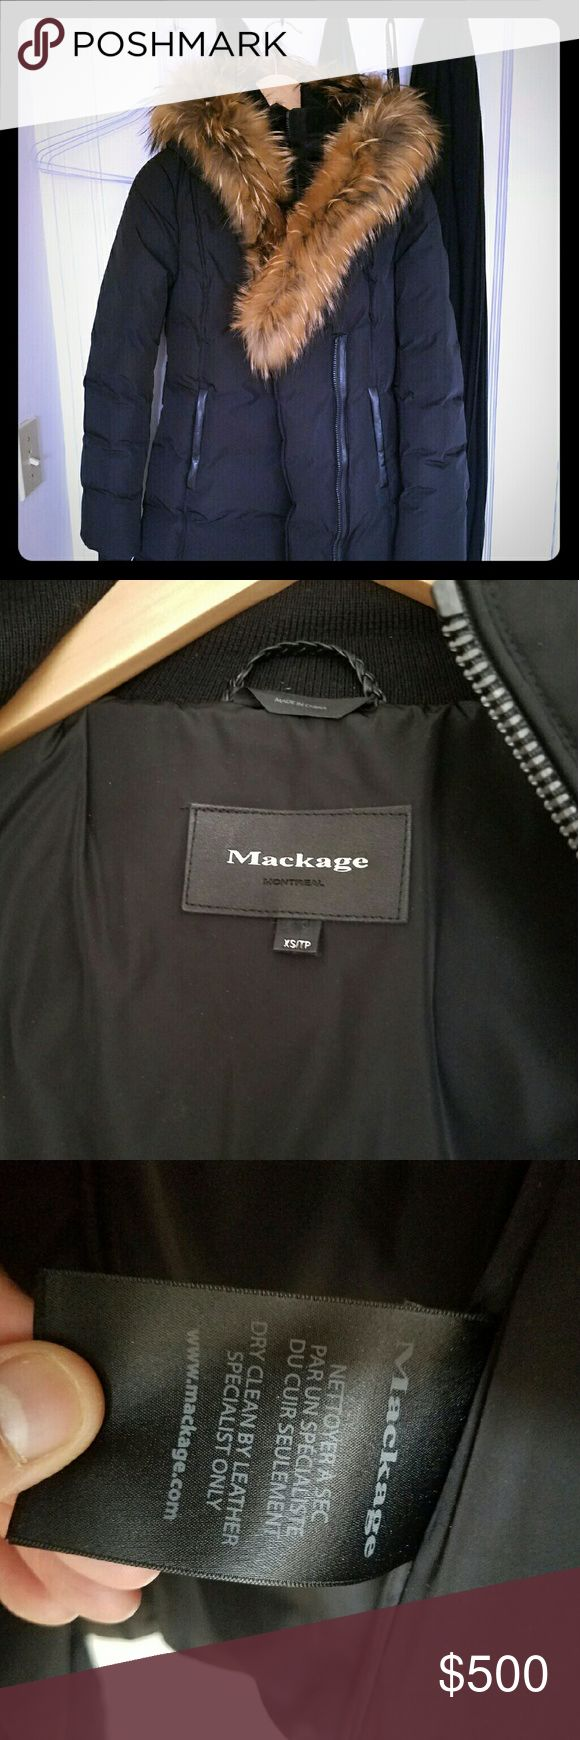 Brand new Mackage jacket Brand new, no tag Mackage jacket with Japanese racoon fur. Mackage Jackets & Coats Puffers